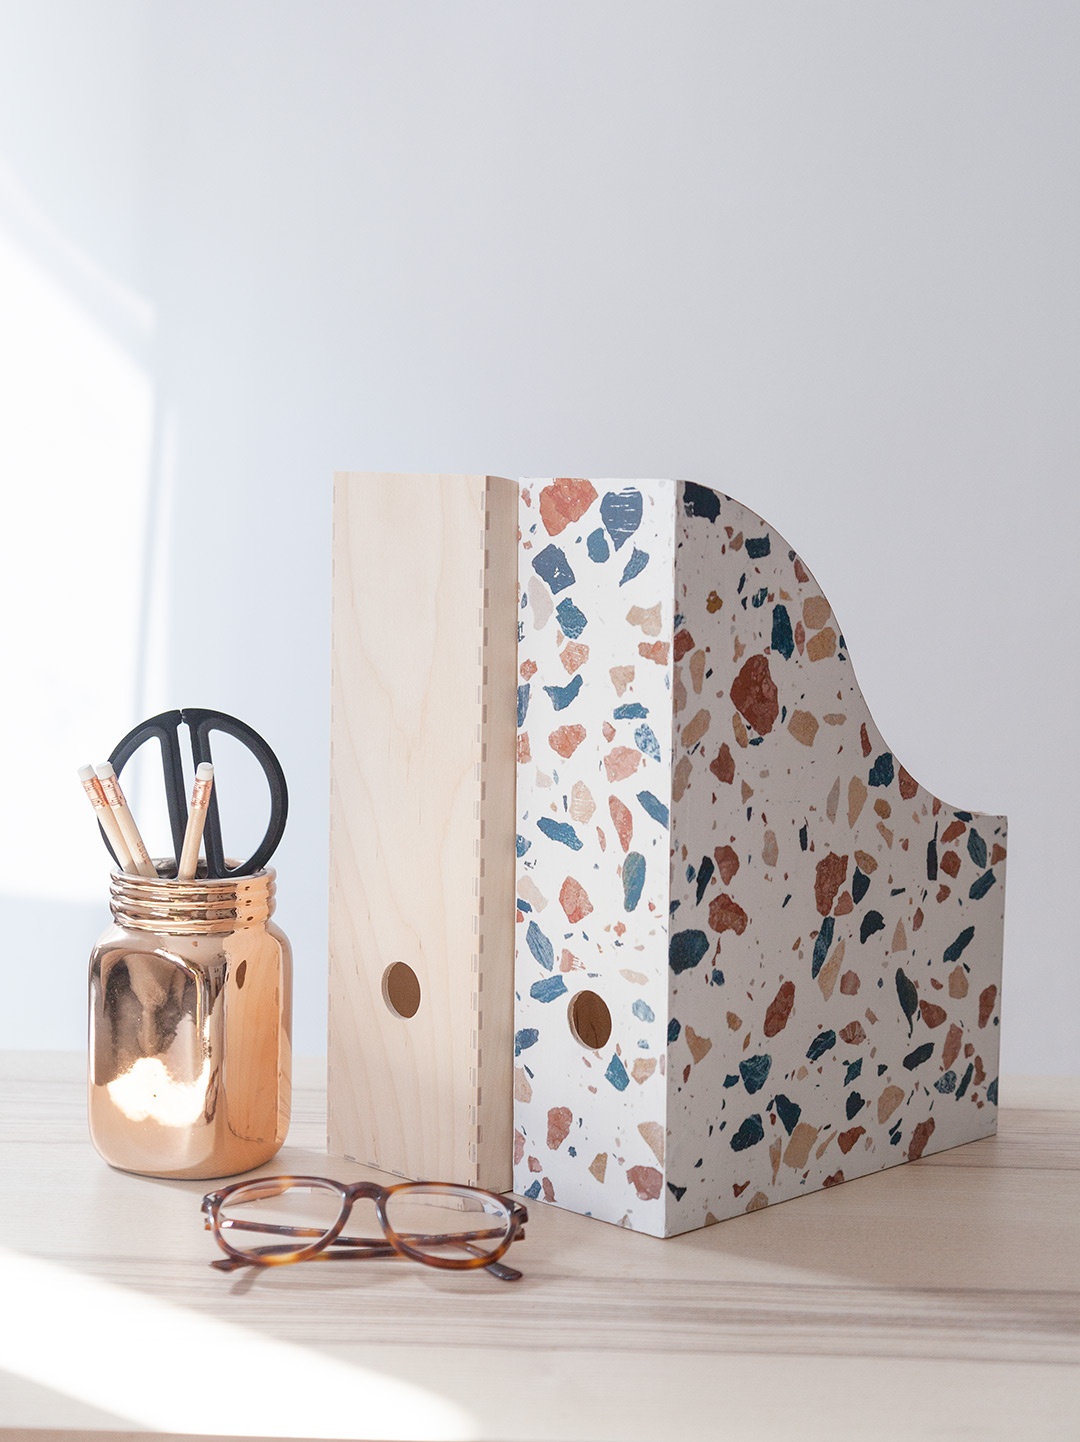 DIY Terrazzo Tile Magazine Holder by Fabrica de Imaginacion